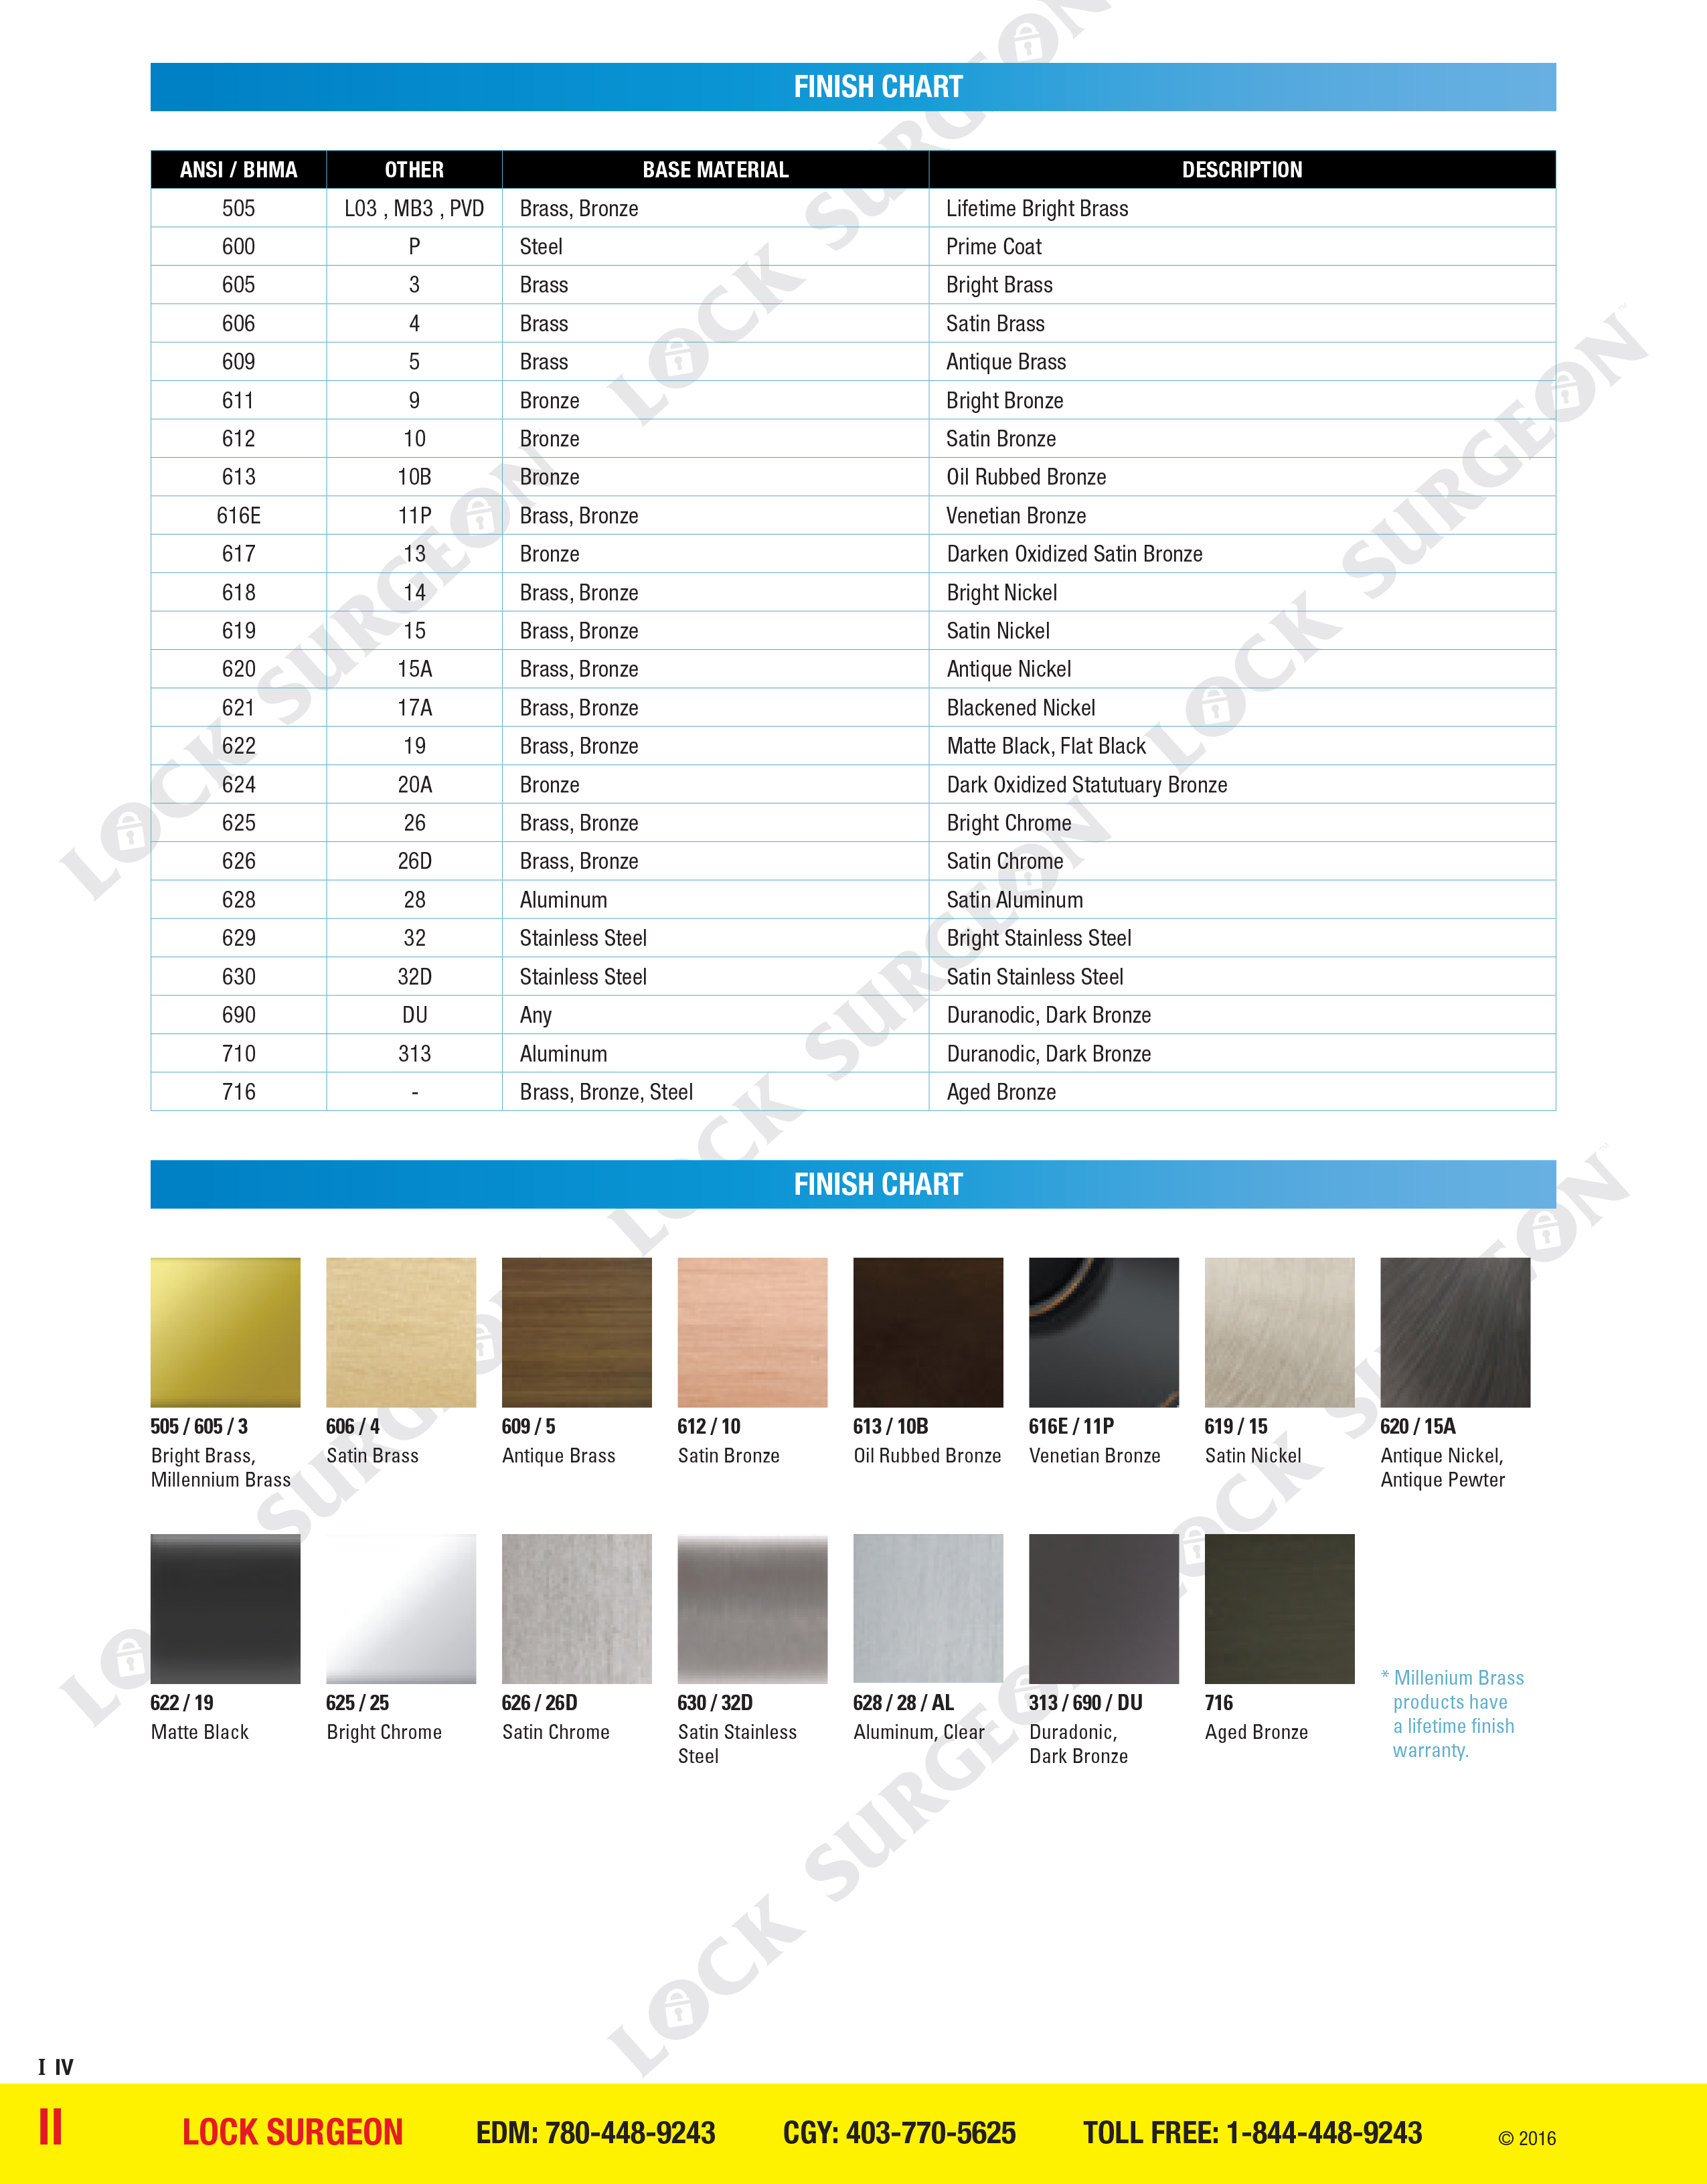 Colour finishes available in: brightbrass, satin brass, satin bronze, oil rubbed bronze, venetian bronze, satin nickle, antique nickle, matte black, bright chrome, satin chrome, satin stainless steel, aluminum clear, dark bronze, aged bronze